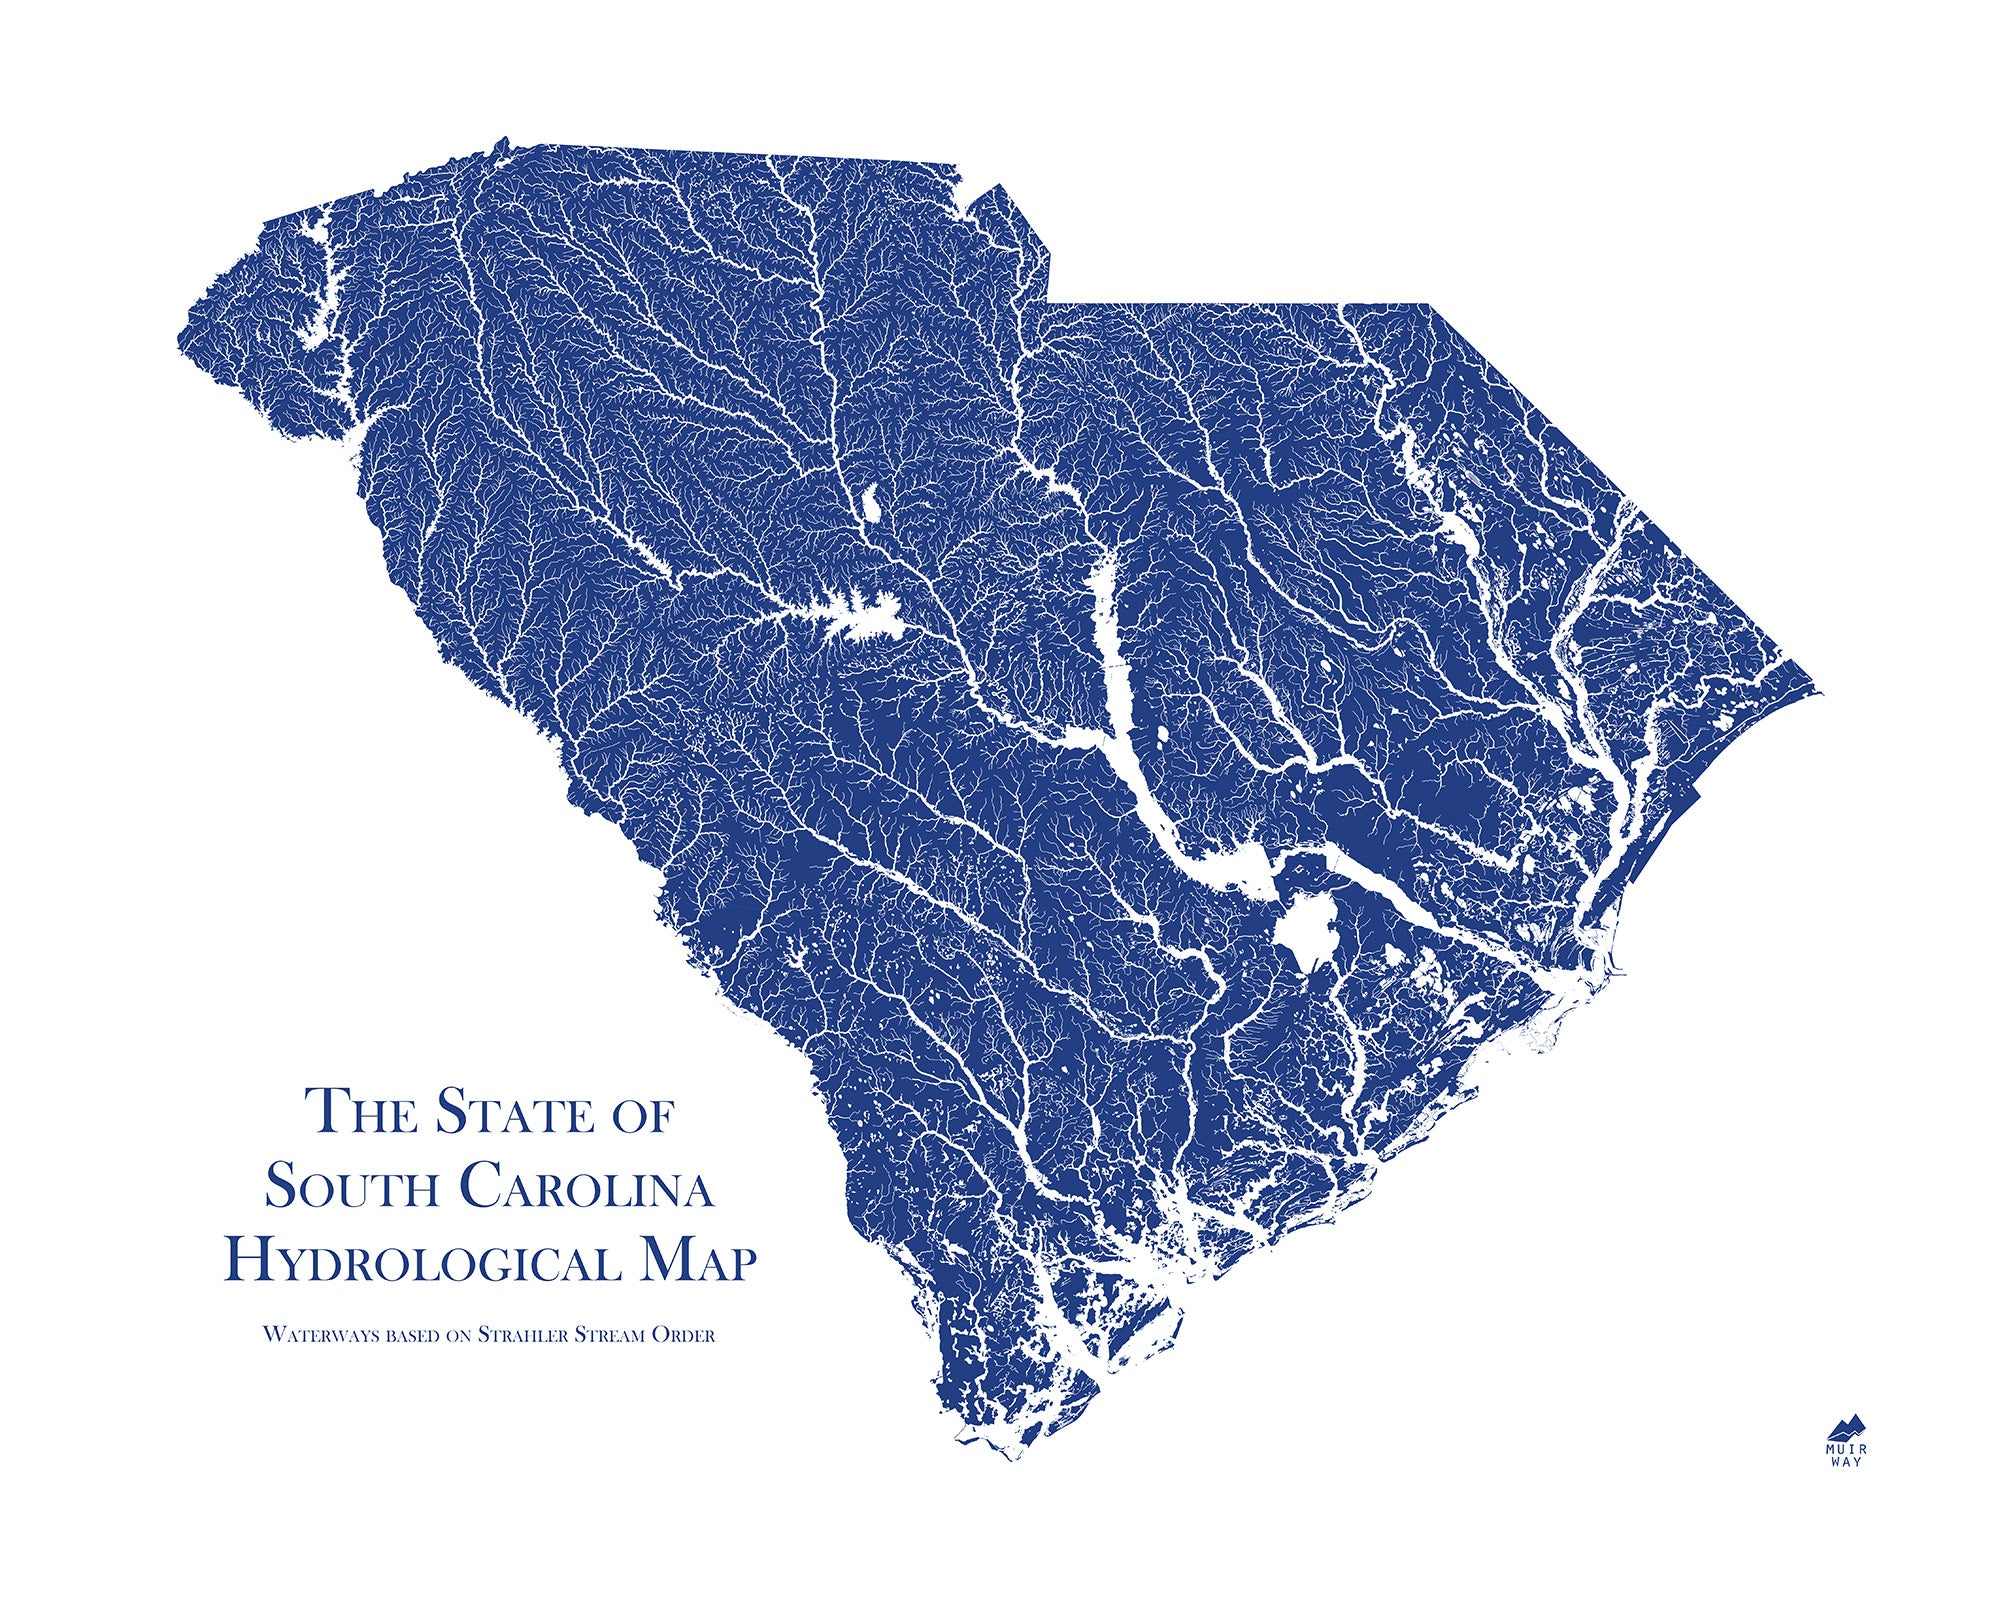 South Carolina Hydrology Series Map - Muir Way